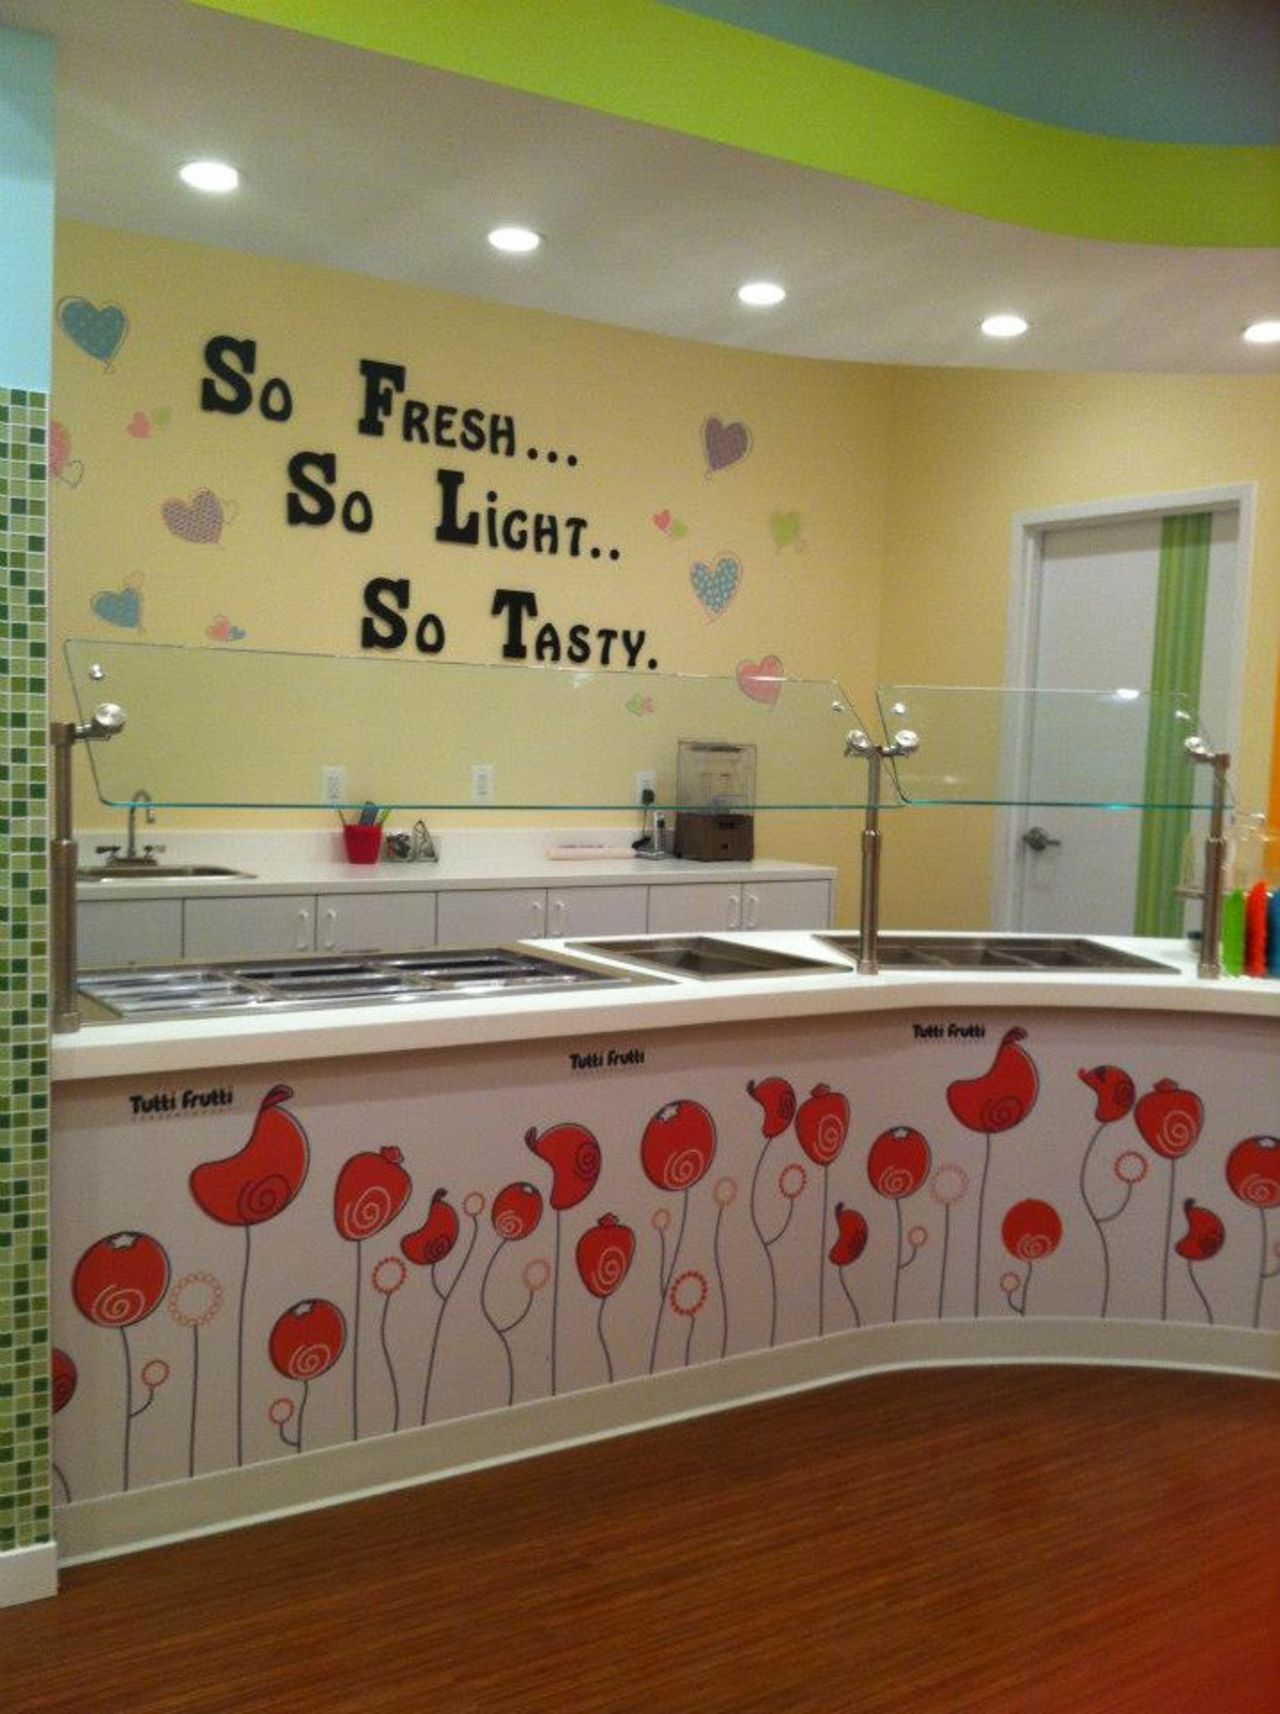 A photo of Tutti Frutti Frozen Yogurt